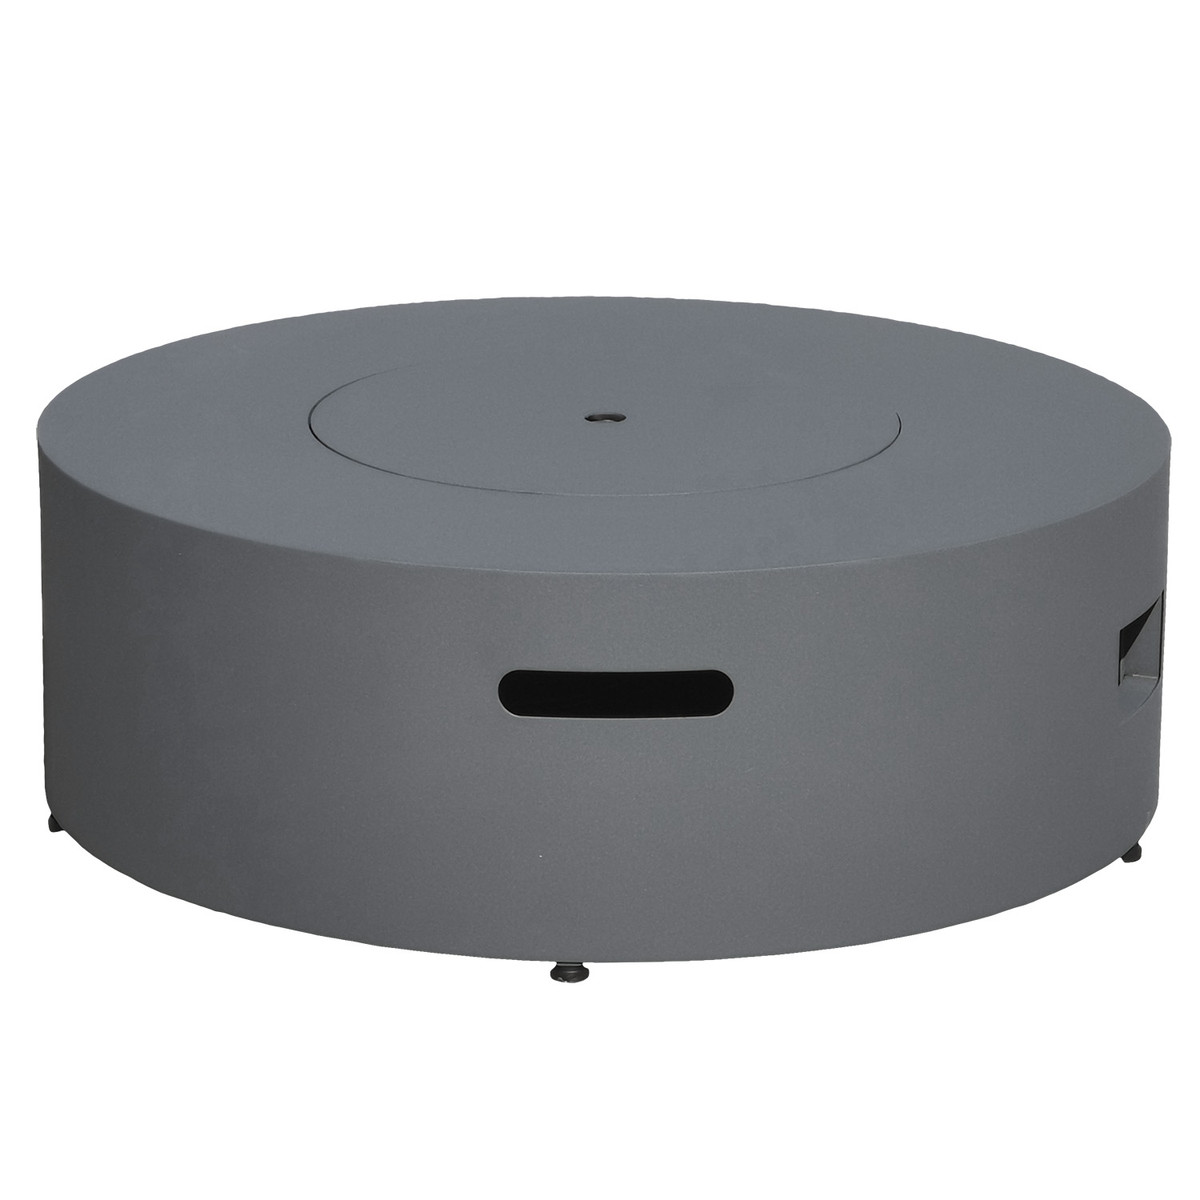 FP-456.media-a-paramount.outdoorheating.firepit.concrete.look.round.wb.01